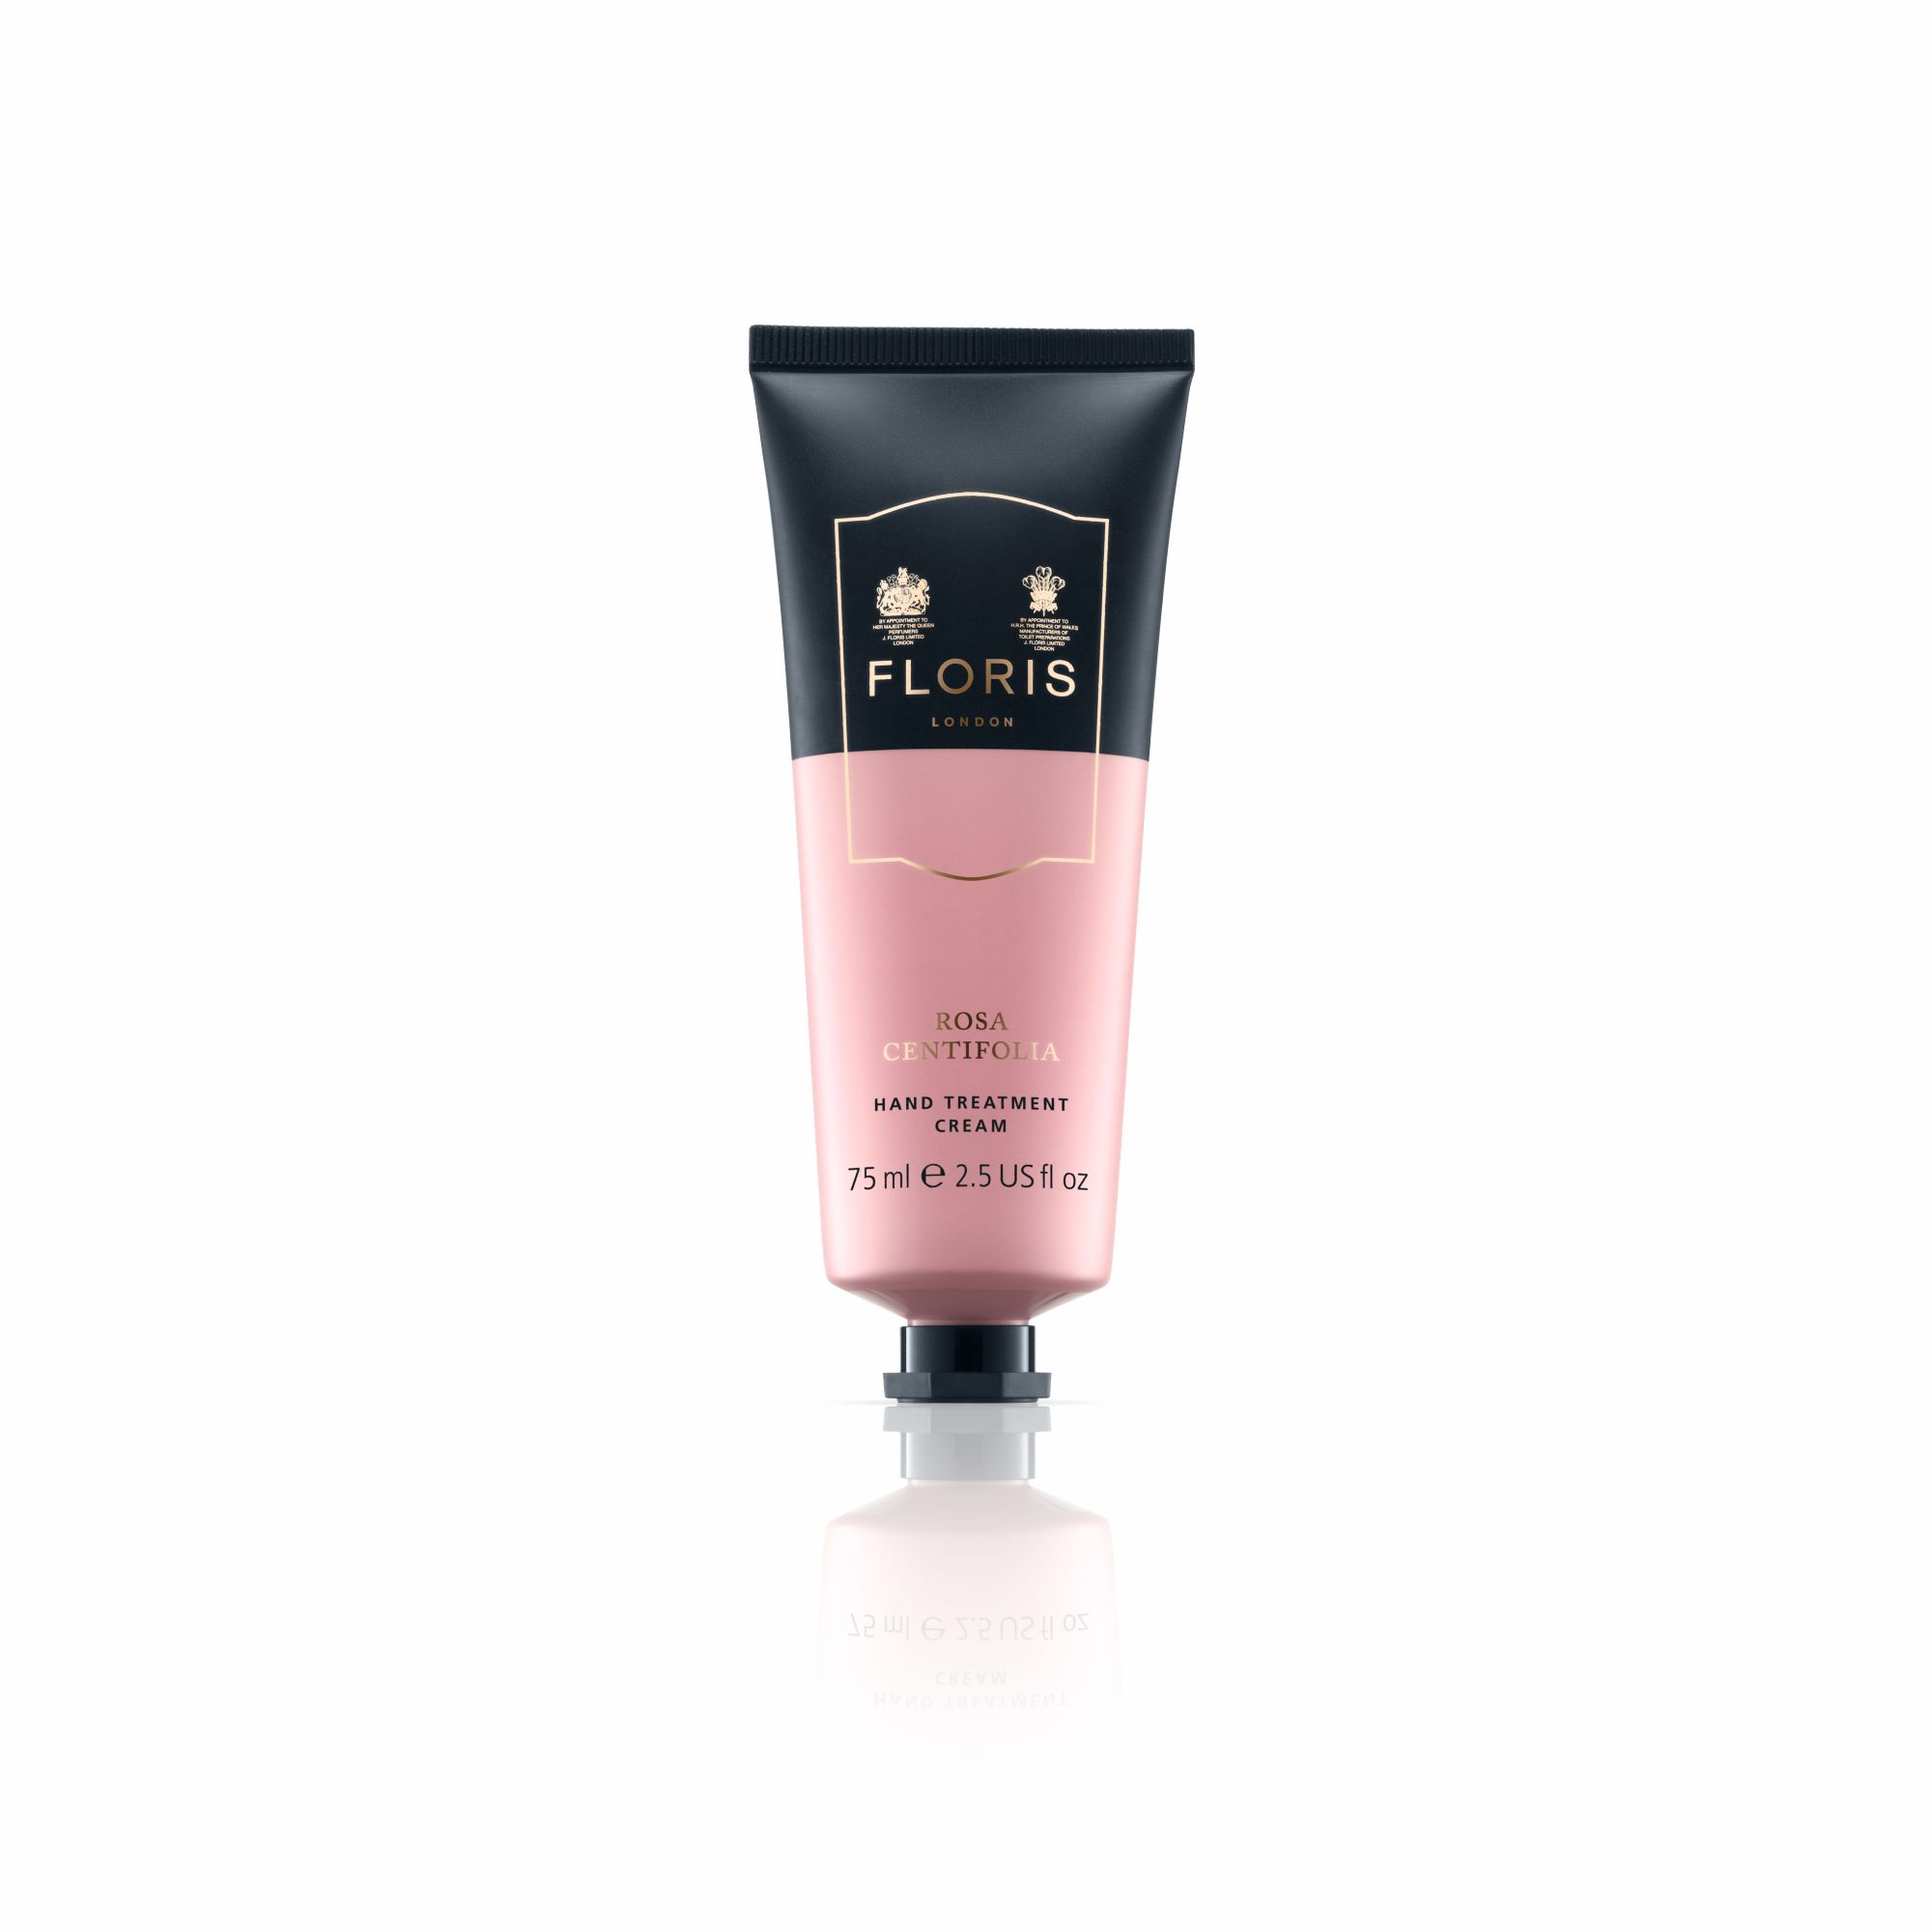 Floris Rosa Centifolia Hand Treatment Cream 75 ml